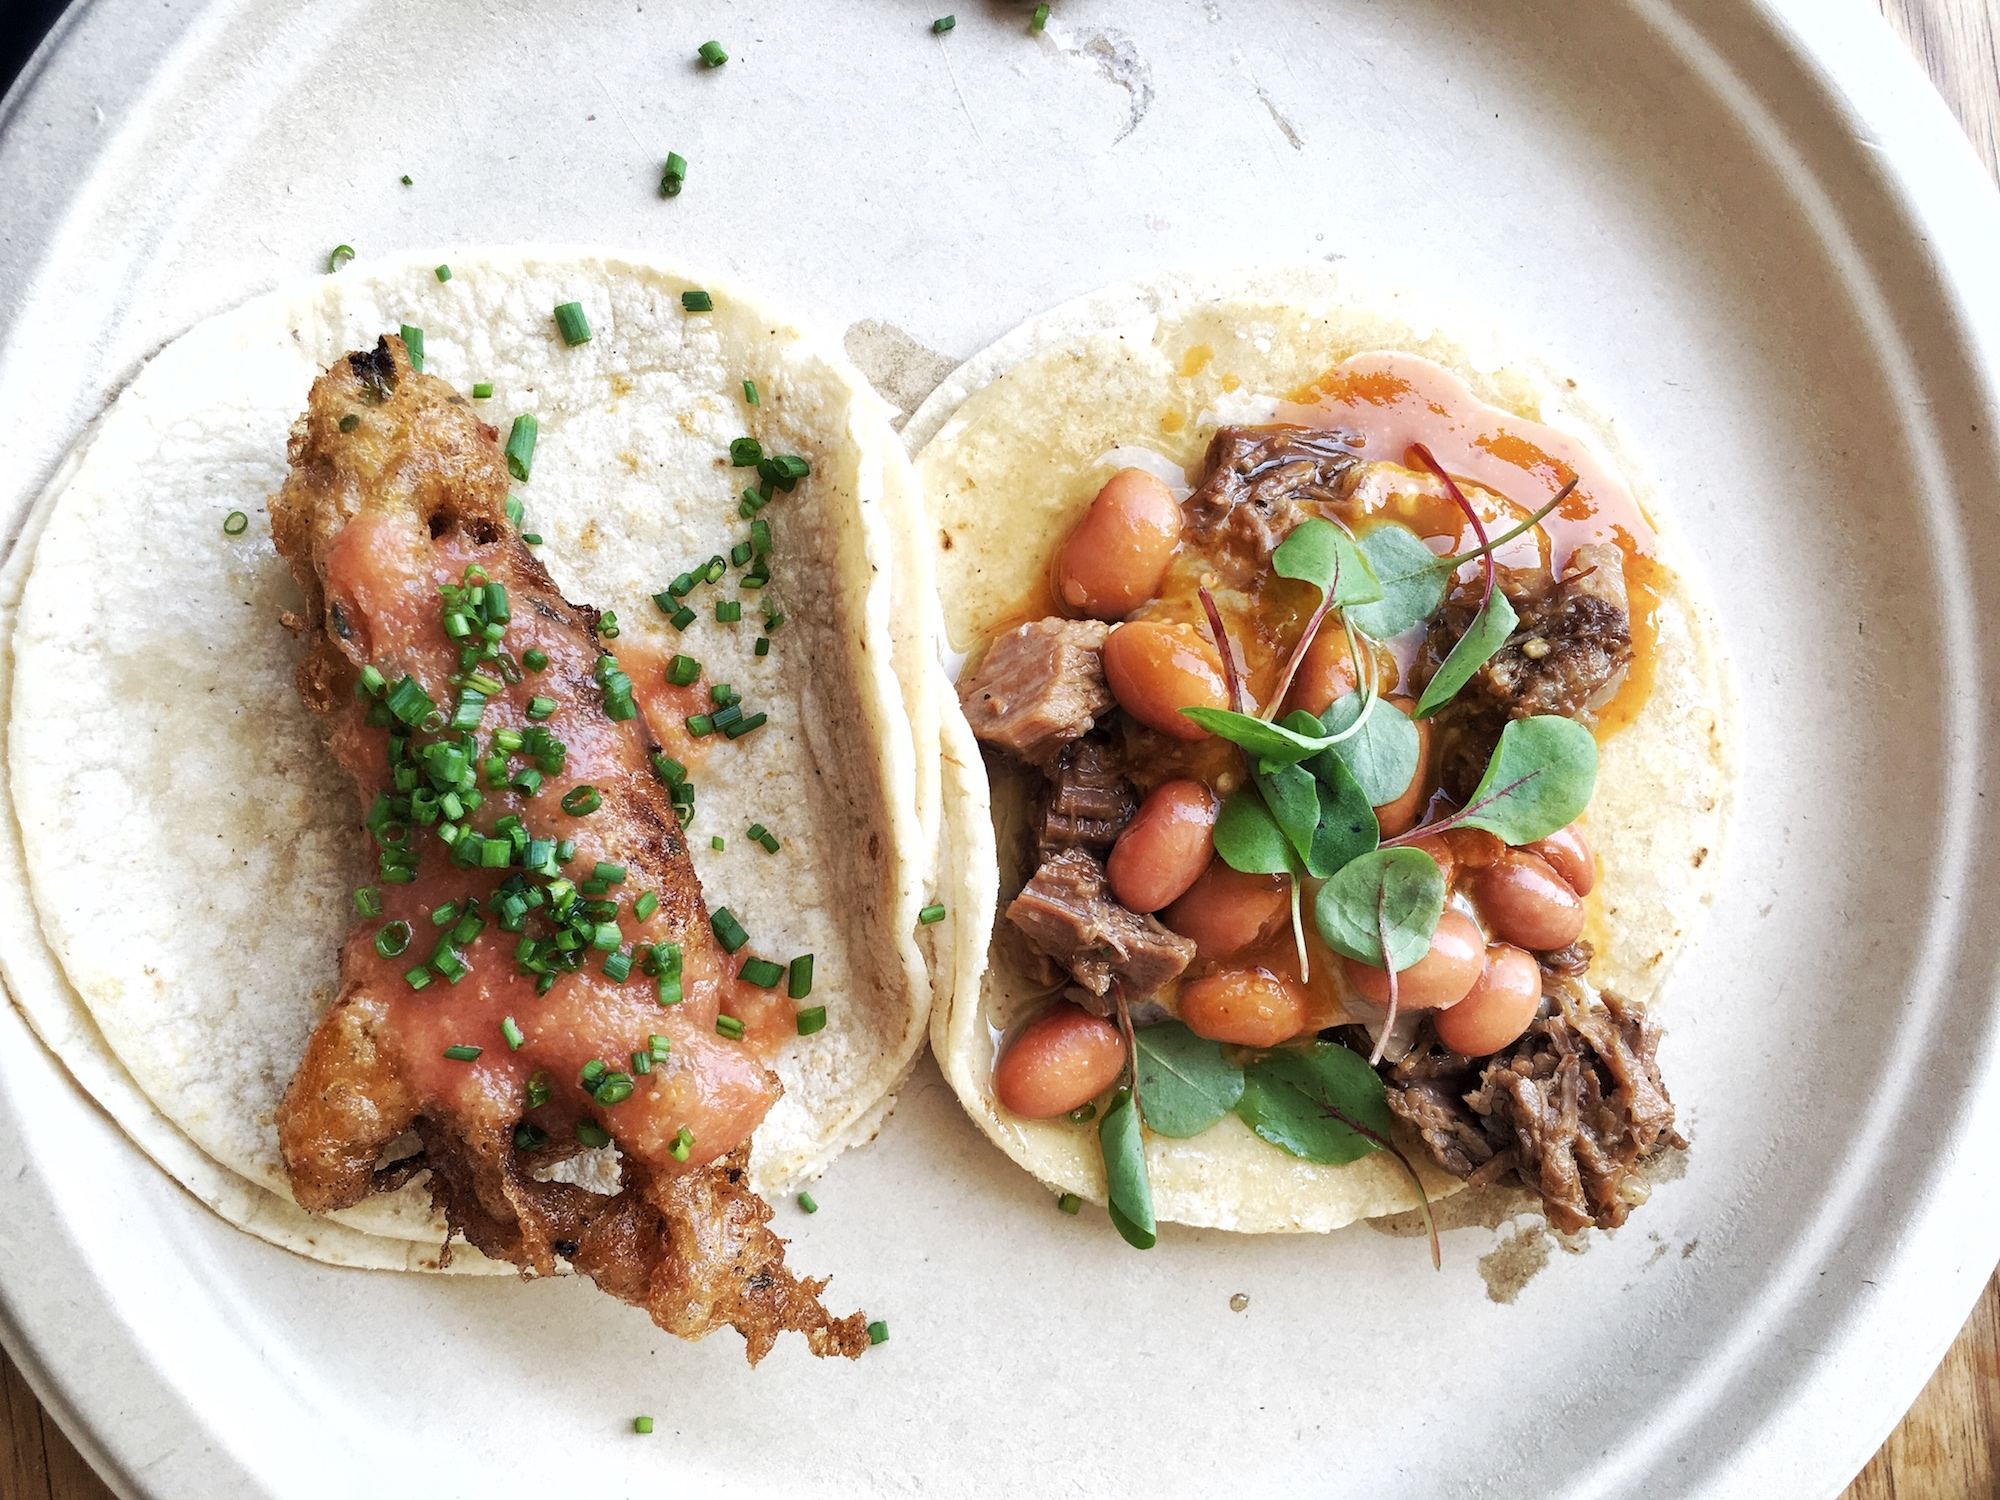 A white paper plate holds two tacos, with beans.